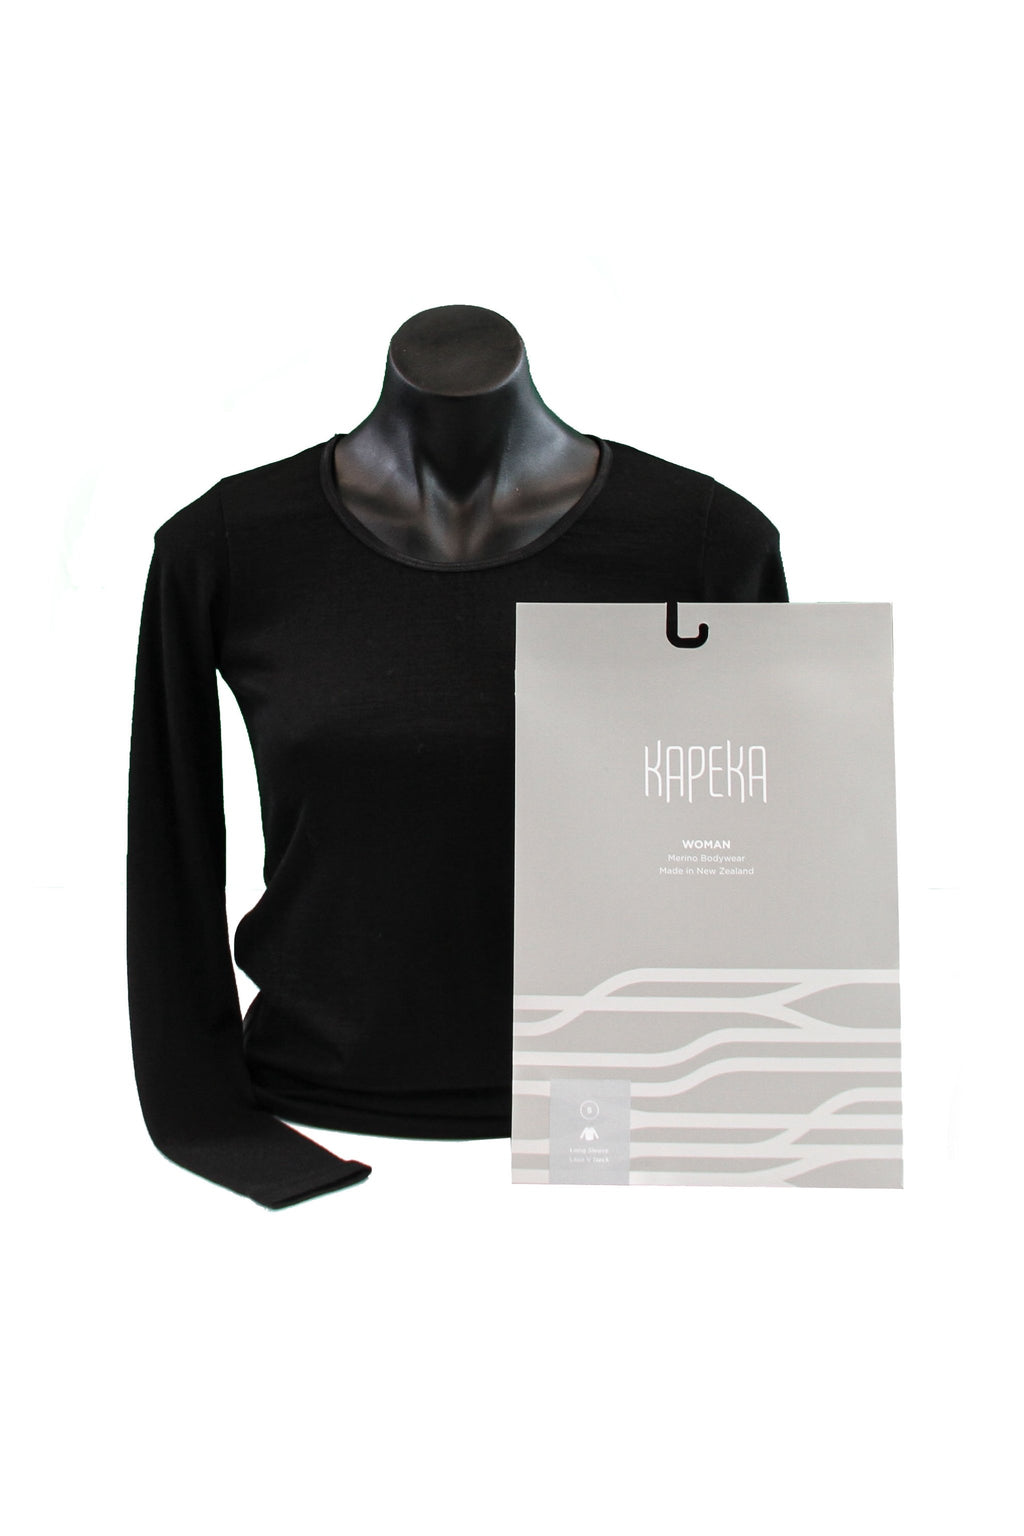 Women's Merino Crew Neck Thermal (Long Sleeve) - Kapeka NZ